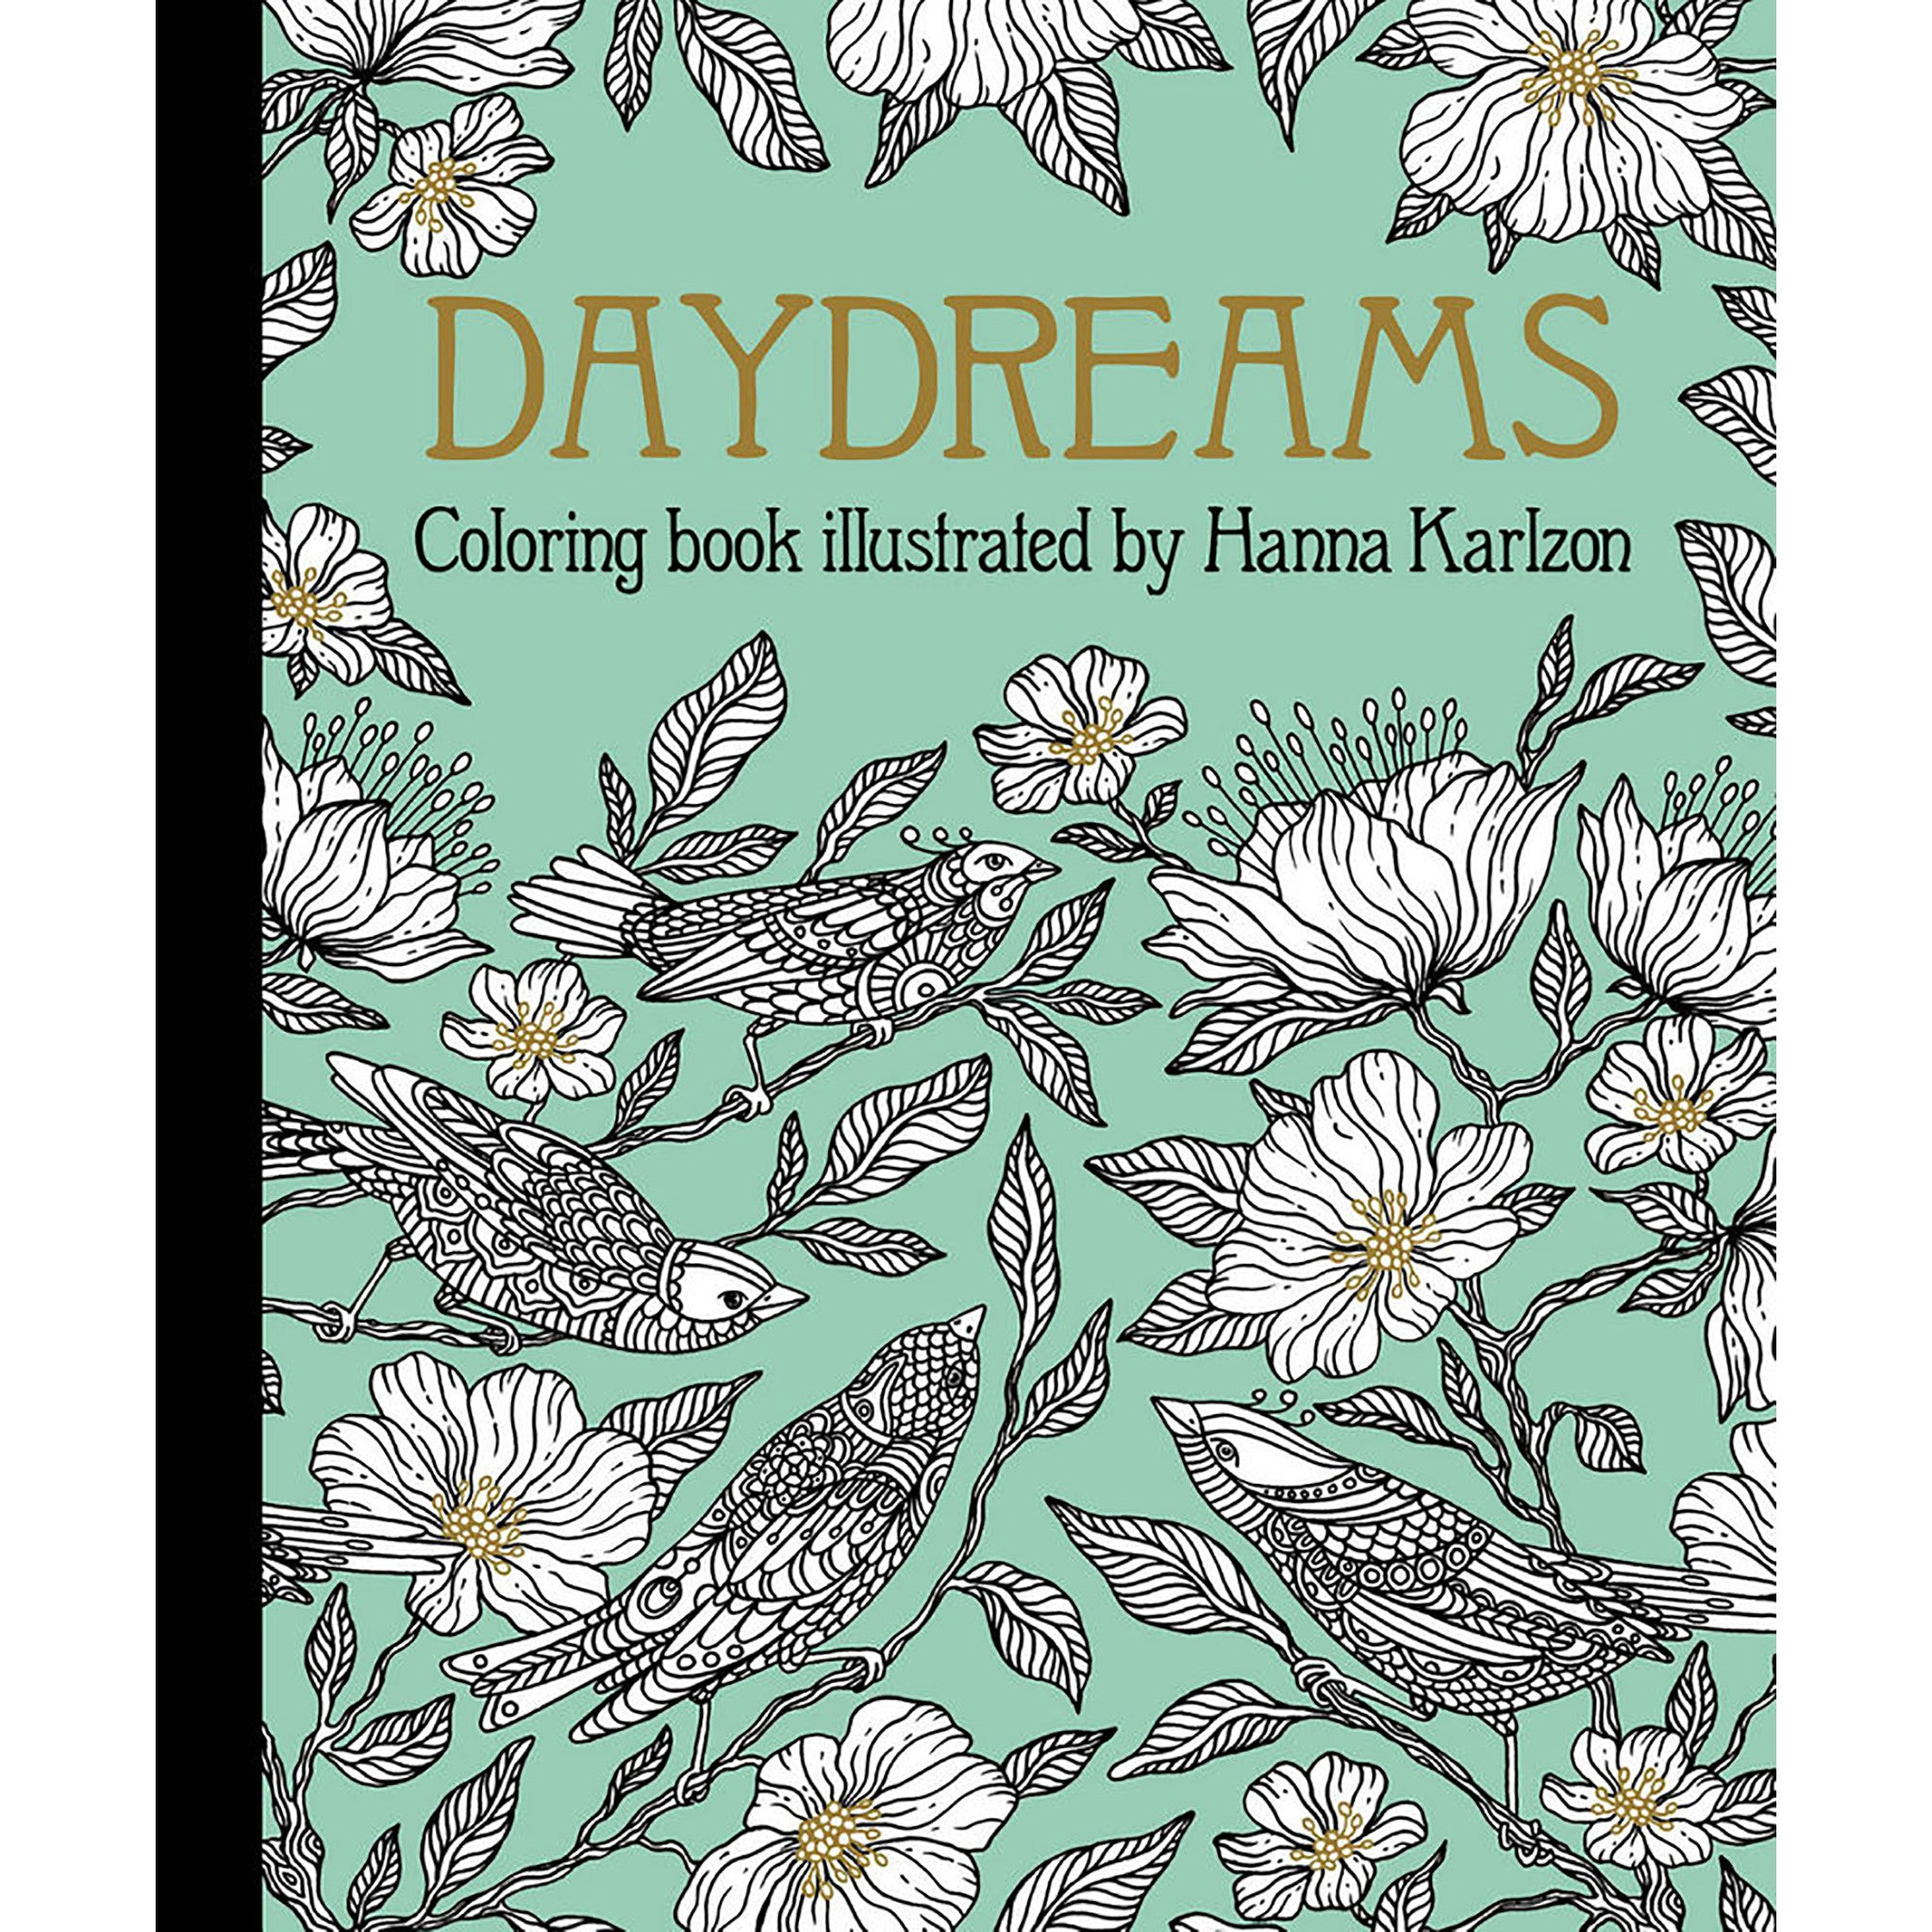 Daydreams Coloring Book – The Getty Store